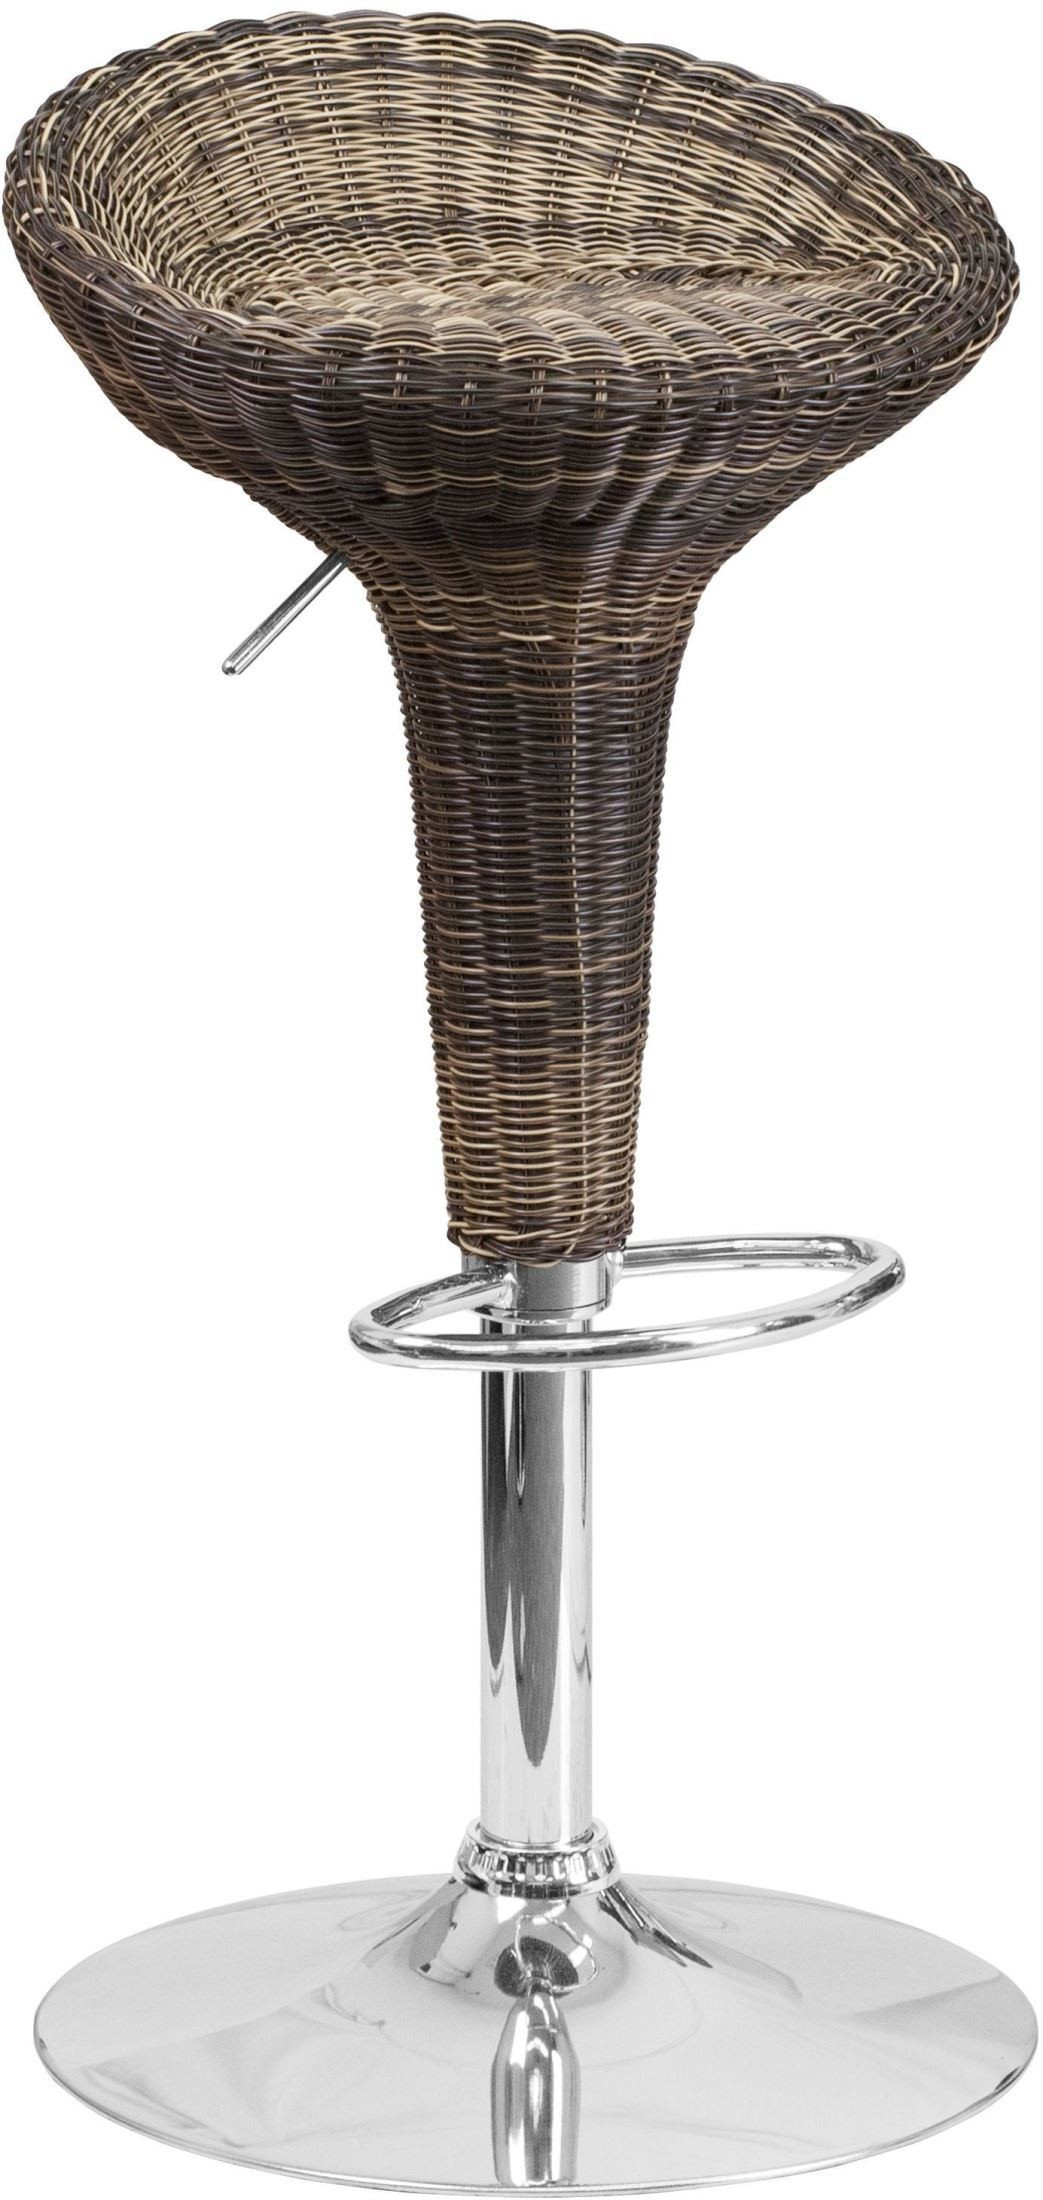 Low Back Wicker Adjustable Height Barstool Ds 711 Gg